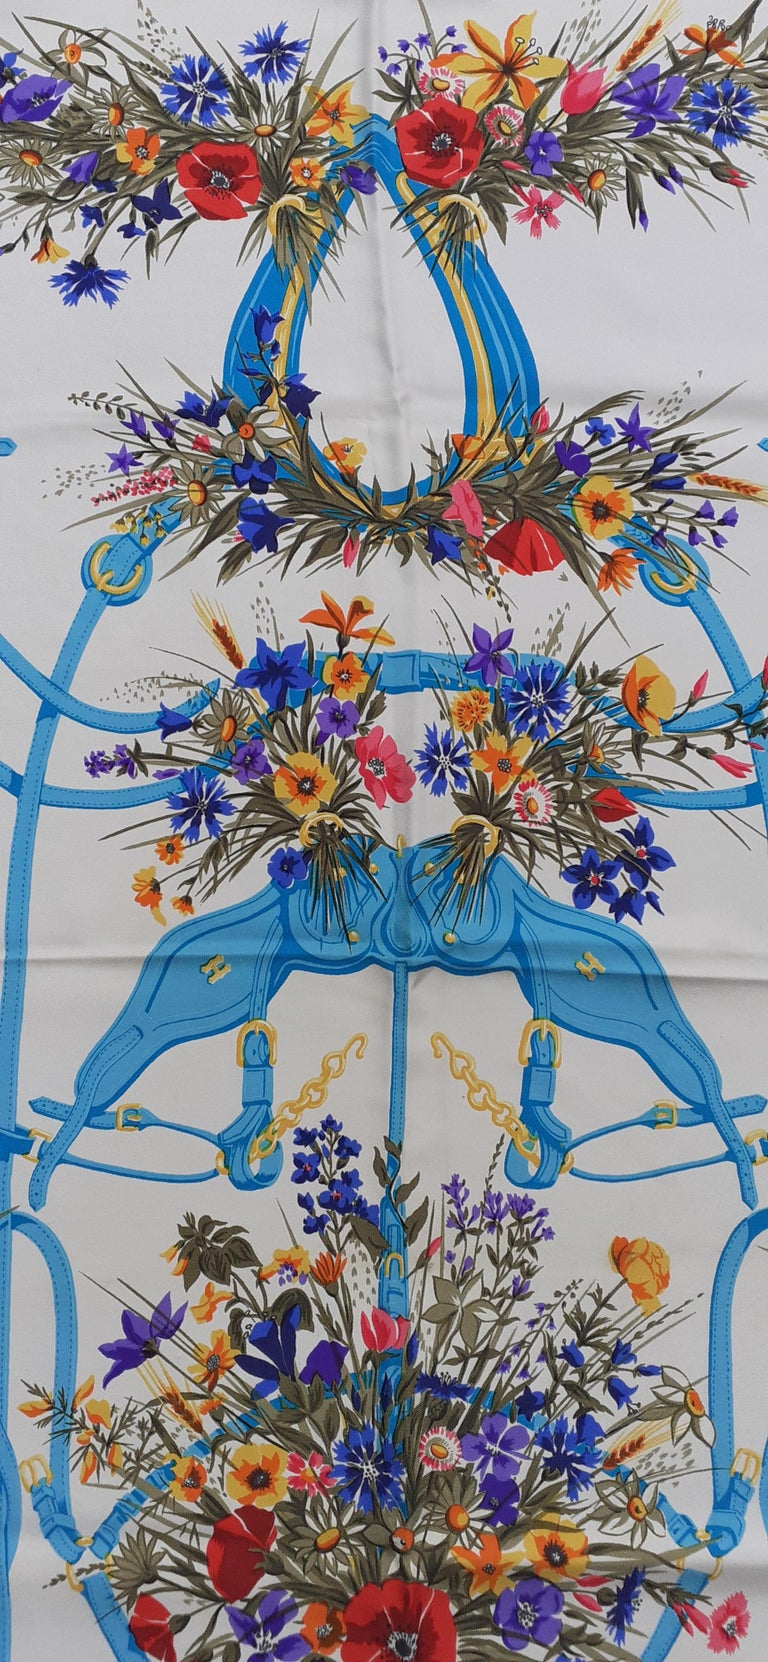 Hermès Vintage Silk Scarf Herbes Folles Lise Coutin White Blue 35 inches For Sale 2